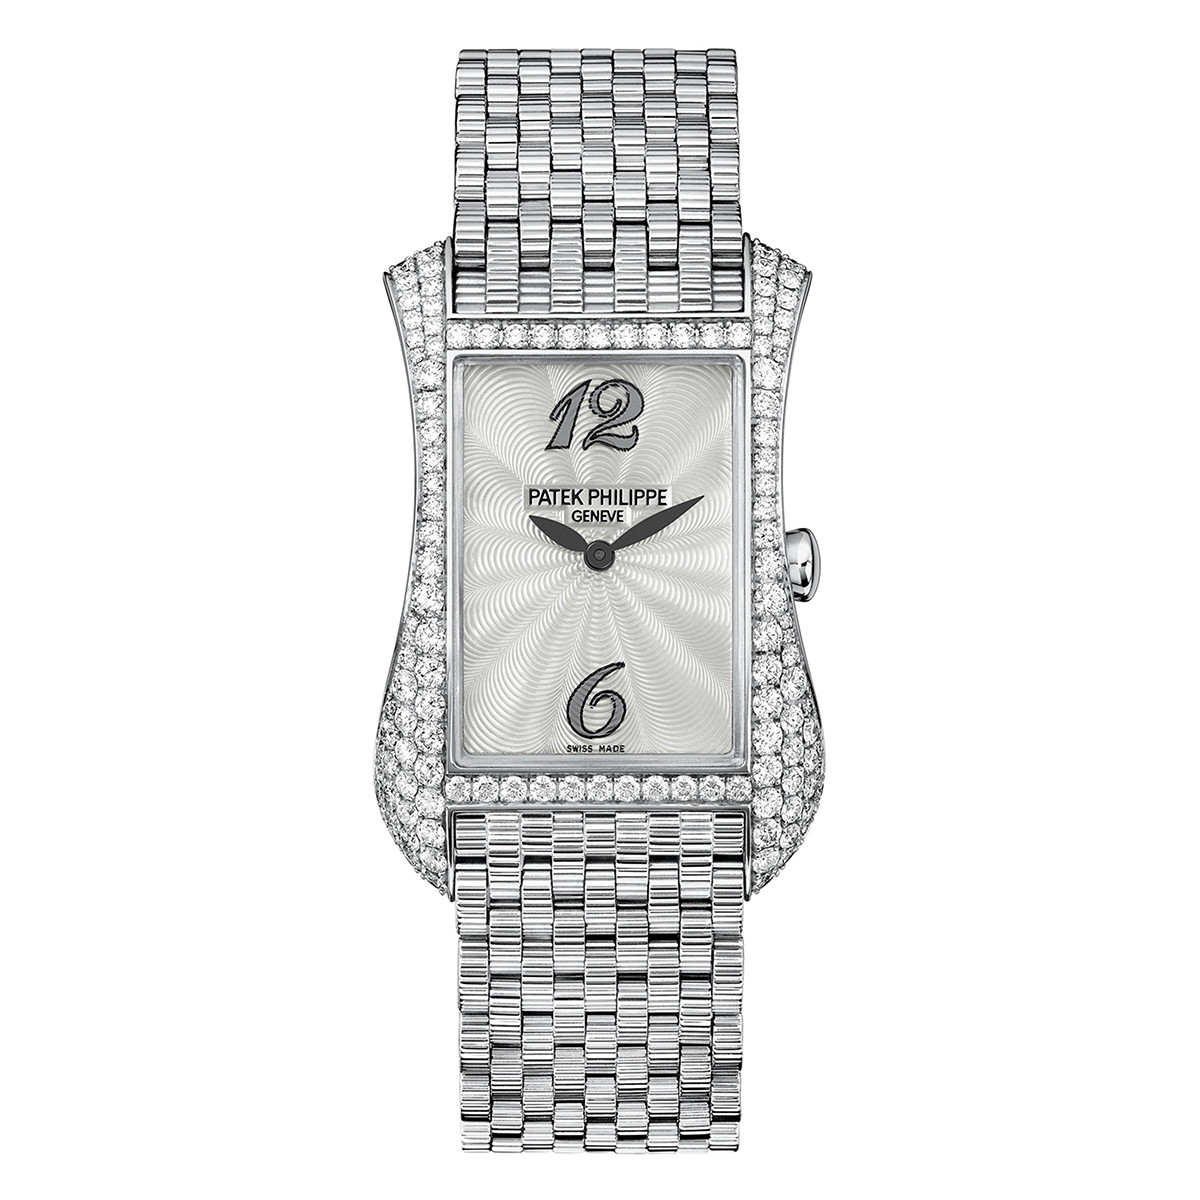 Ladies' Gondolo Serata White Gold (4972/1G-001)